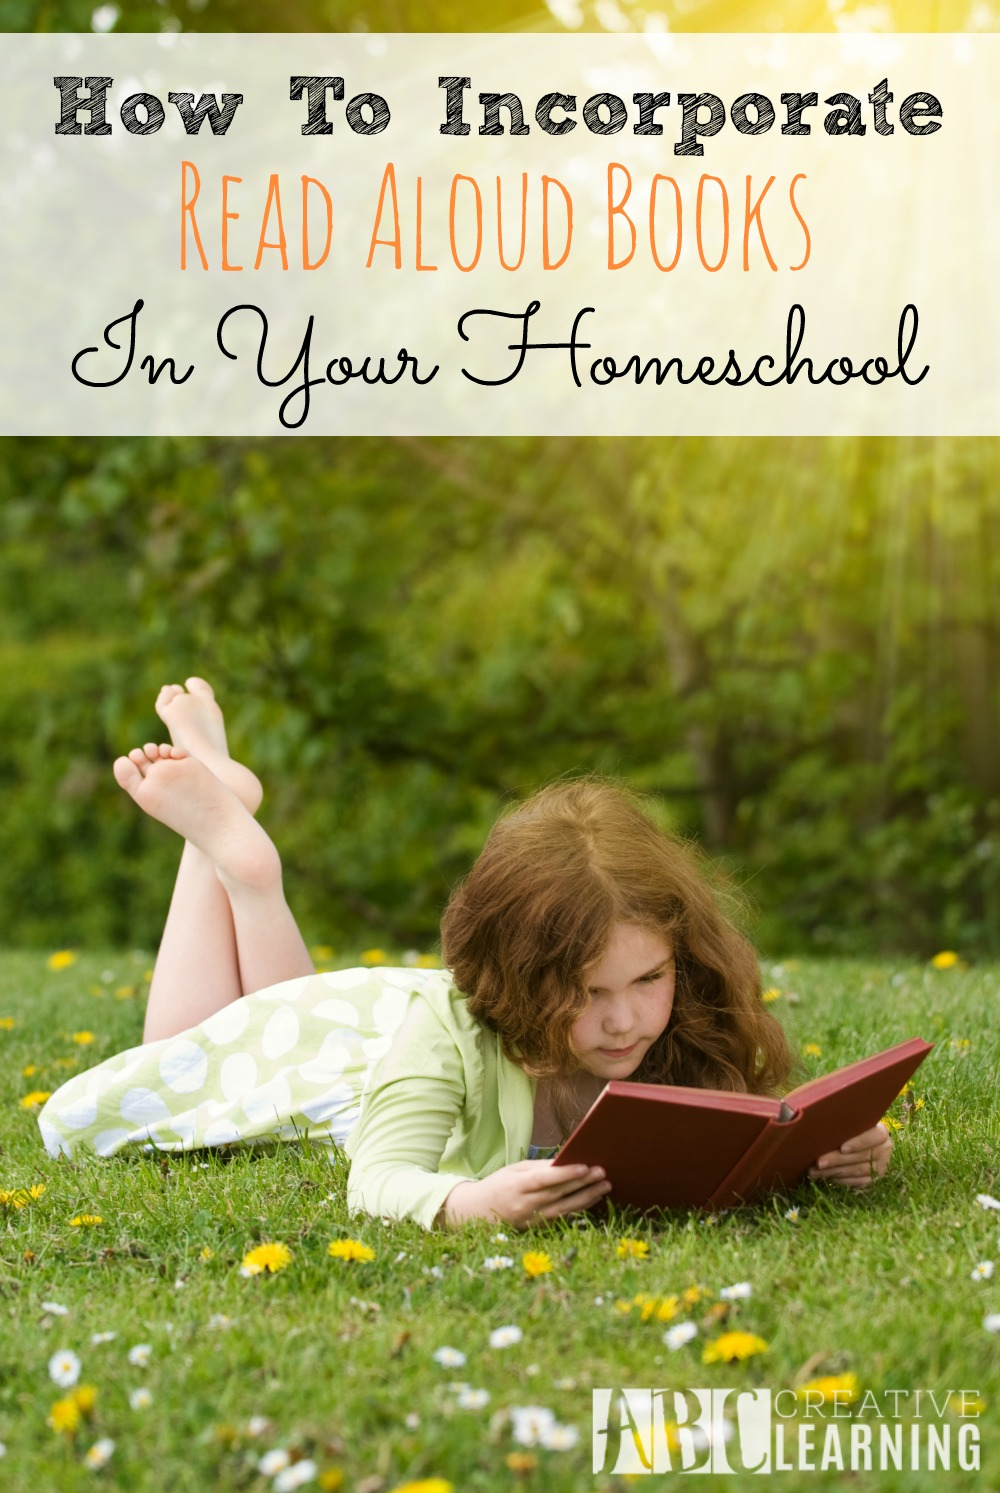 How to Incorporate Read Aloud Books in Your Homeschool